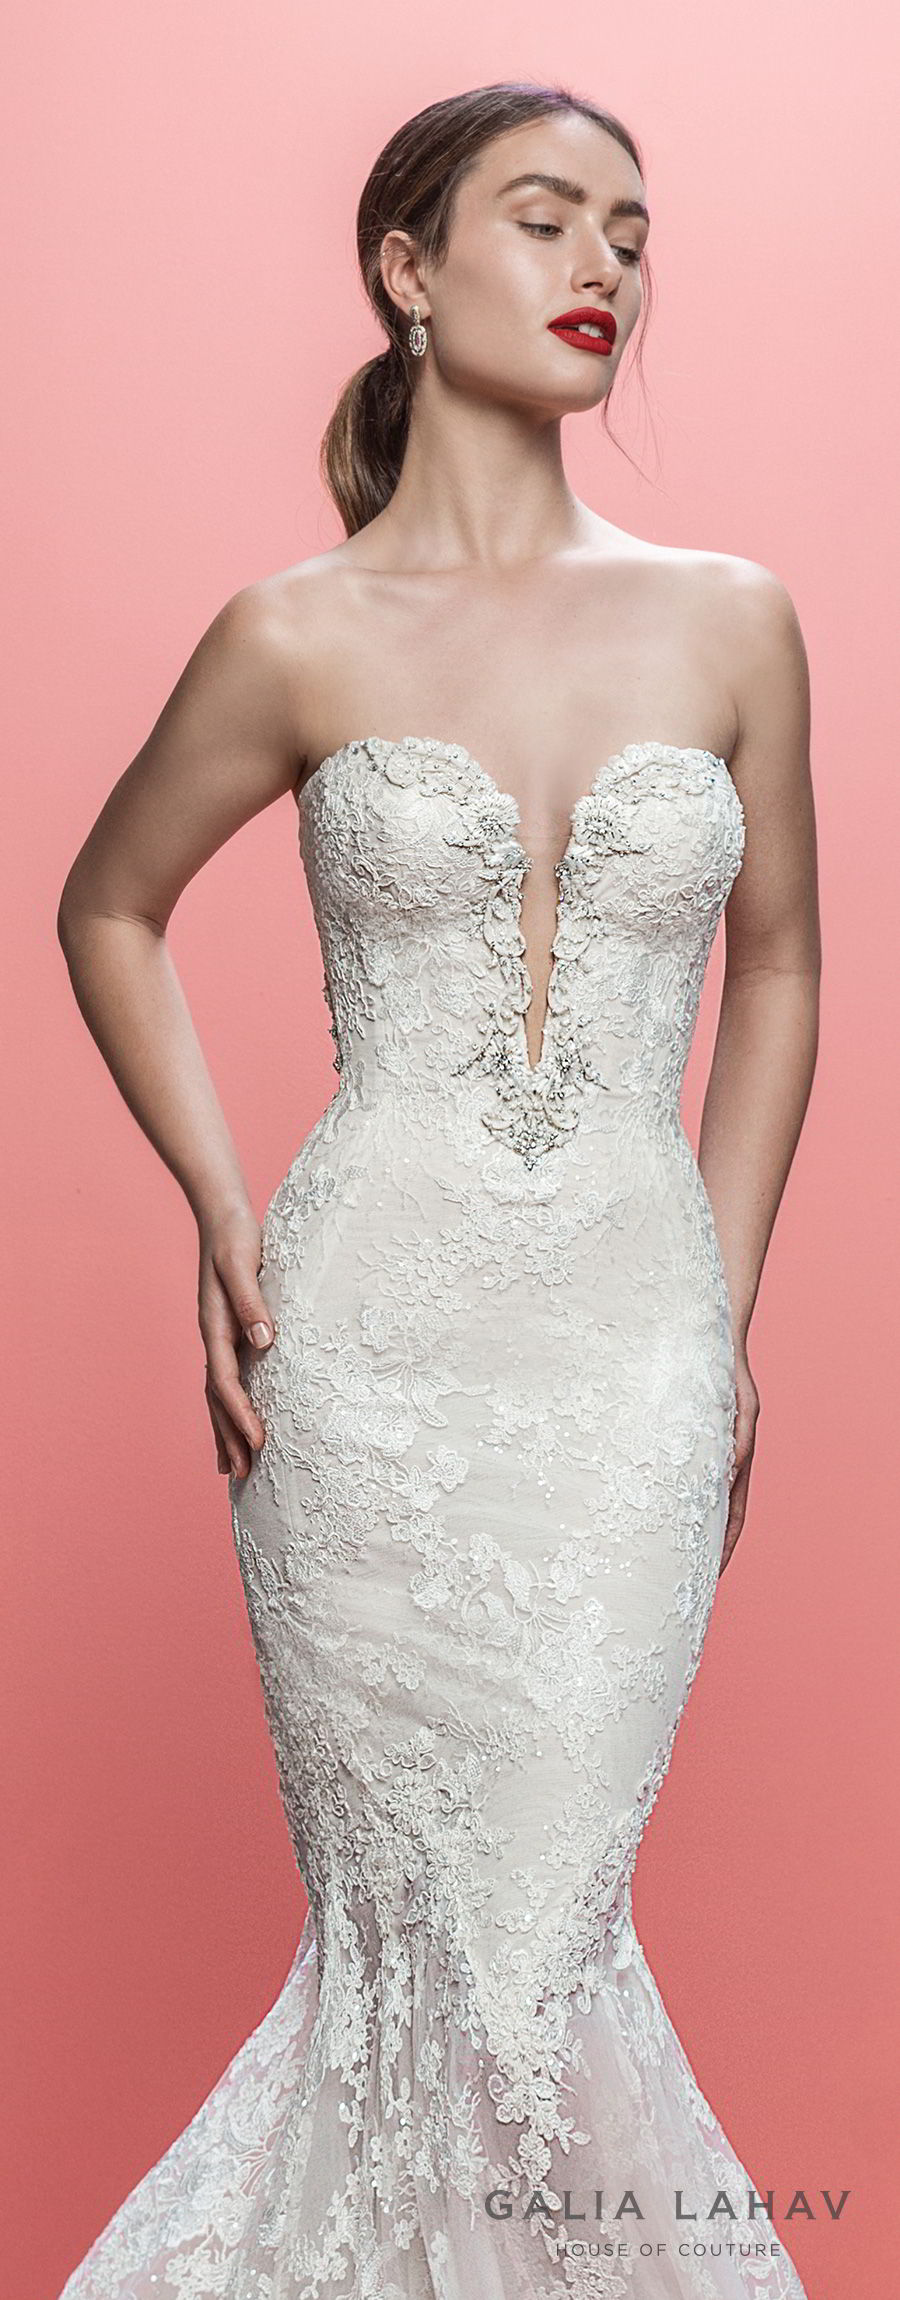 galia lahav spring 2019 bridal strapless deep plunging sweetheart neckline full embellishmet elegant mermaid wedding dress low open back chapel train (lorraine) zv